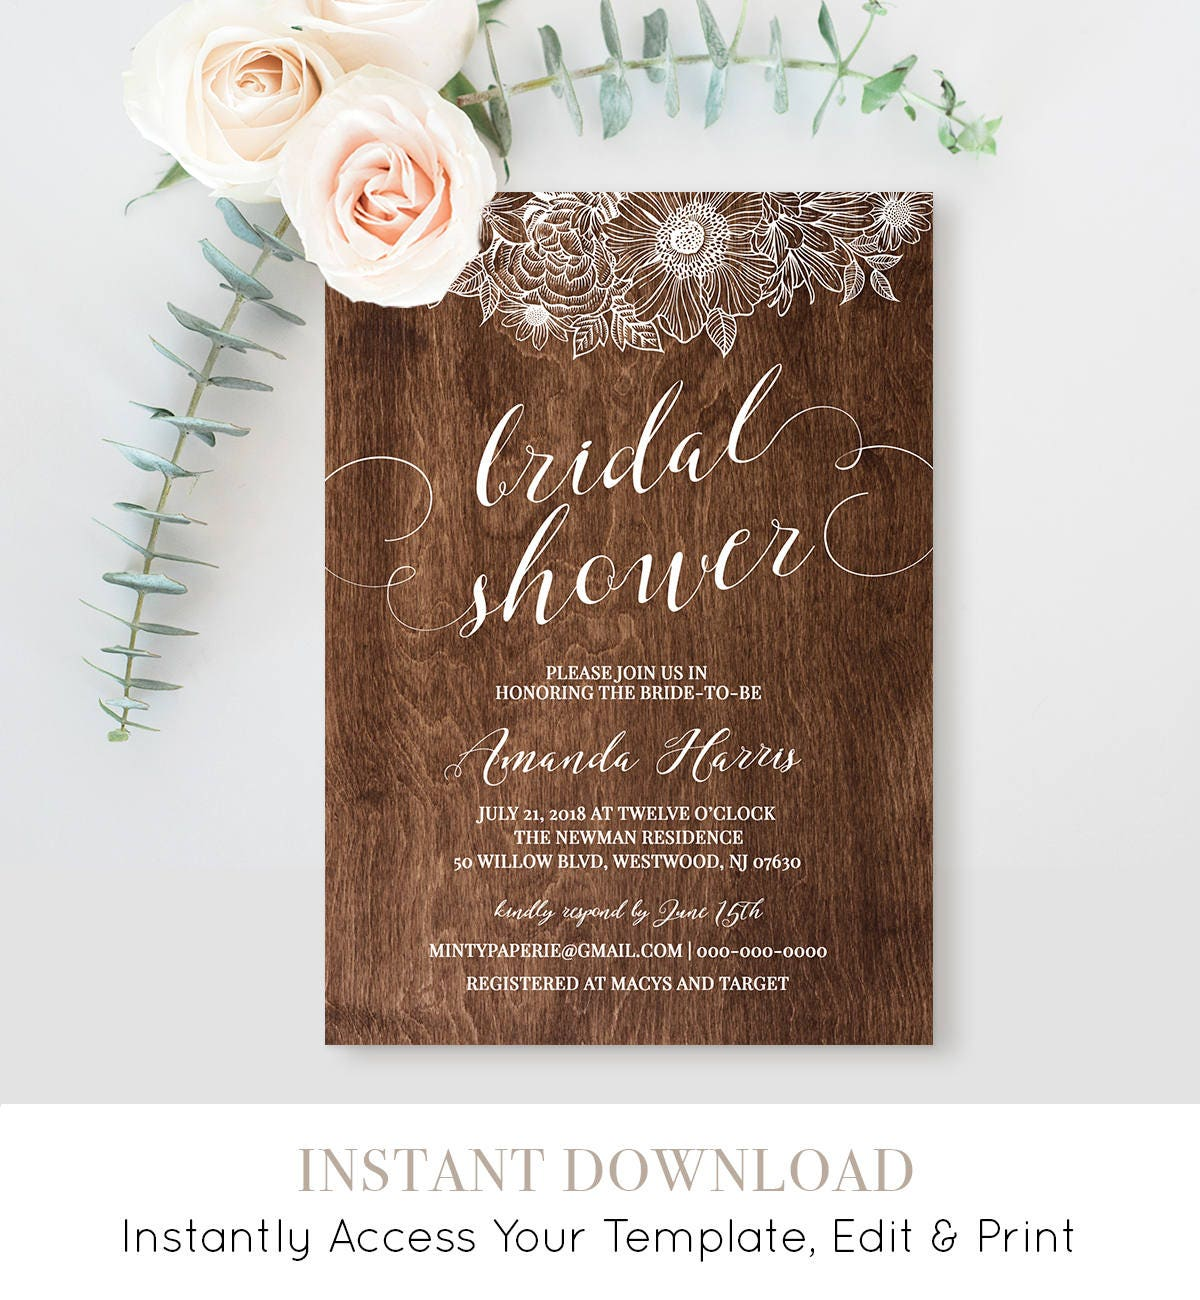 photo relating to Printable Bridal Shower Cards known as Bridal Shower Invitation Template, Printable Marriage ceremony Shower